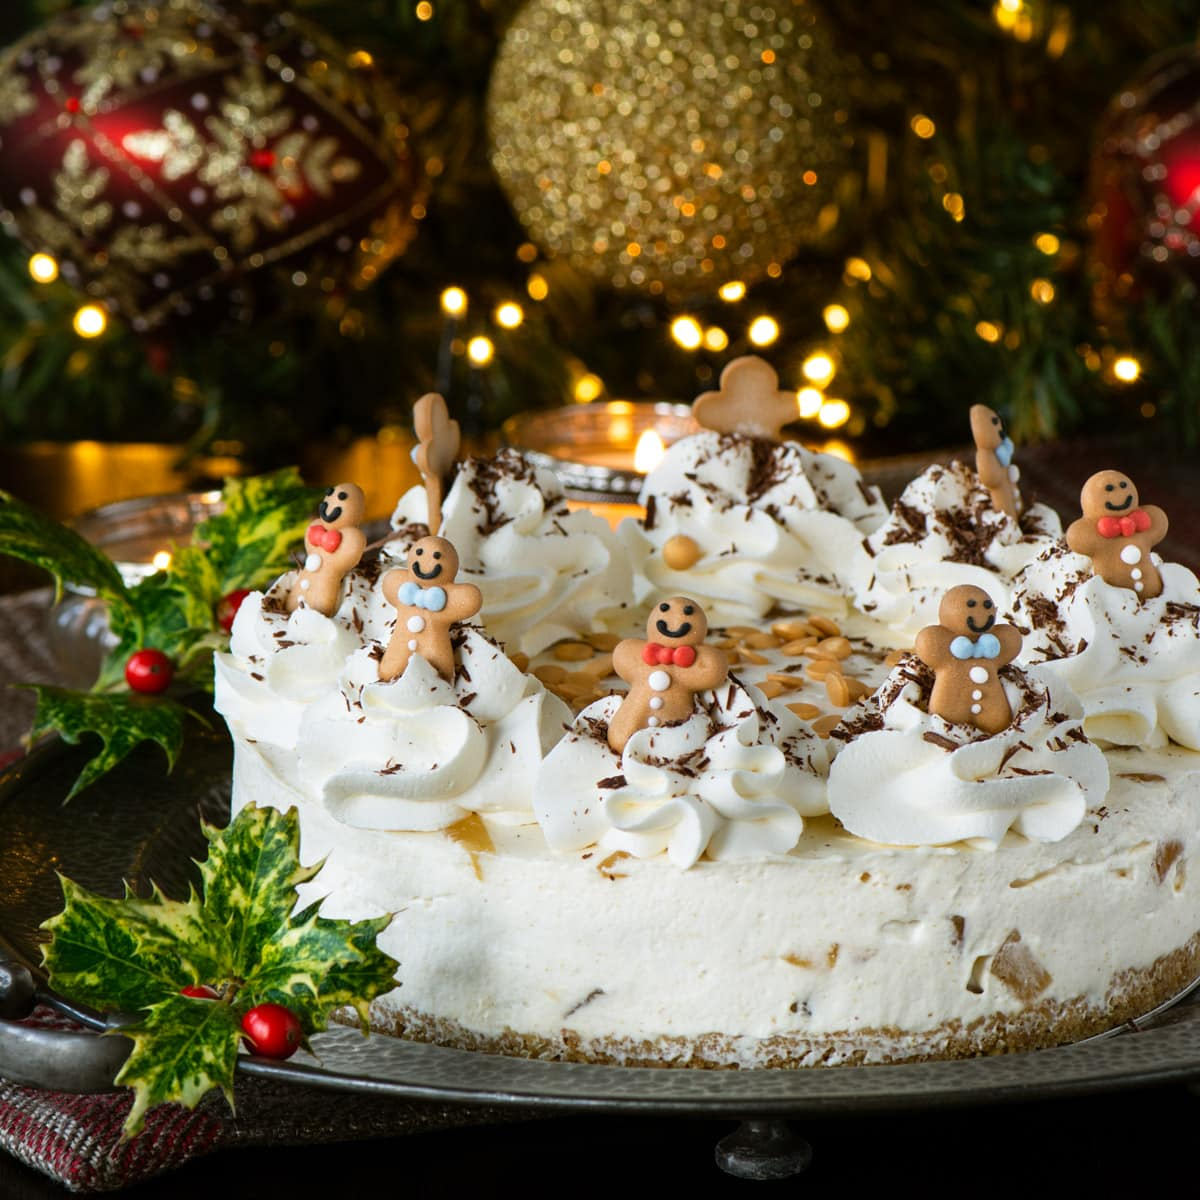 No-Bake Ginger Cheesecake - A crunchy biscuit base with a smooth ginger cheesecake filling and plenty of chopped stem ginger running through it, topped with swirls of whipped cream and grated dark chocolate.